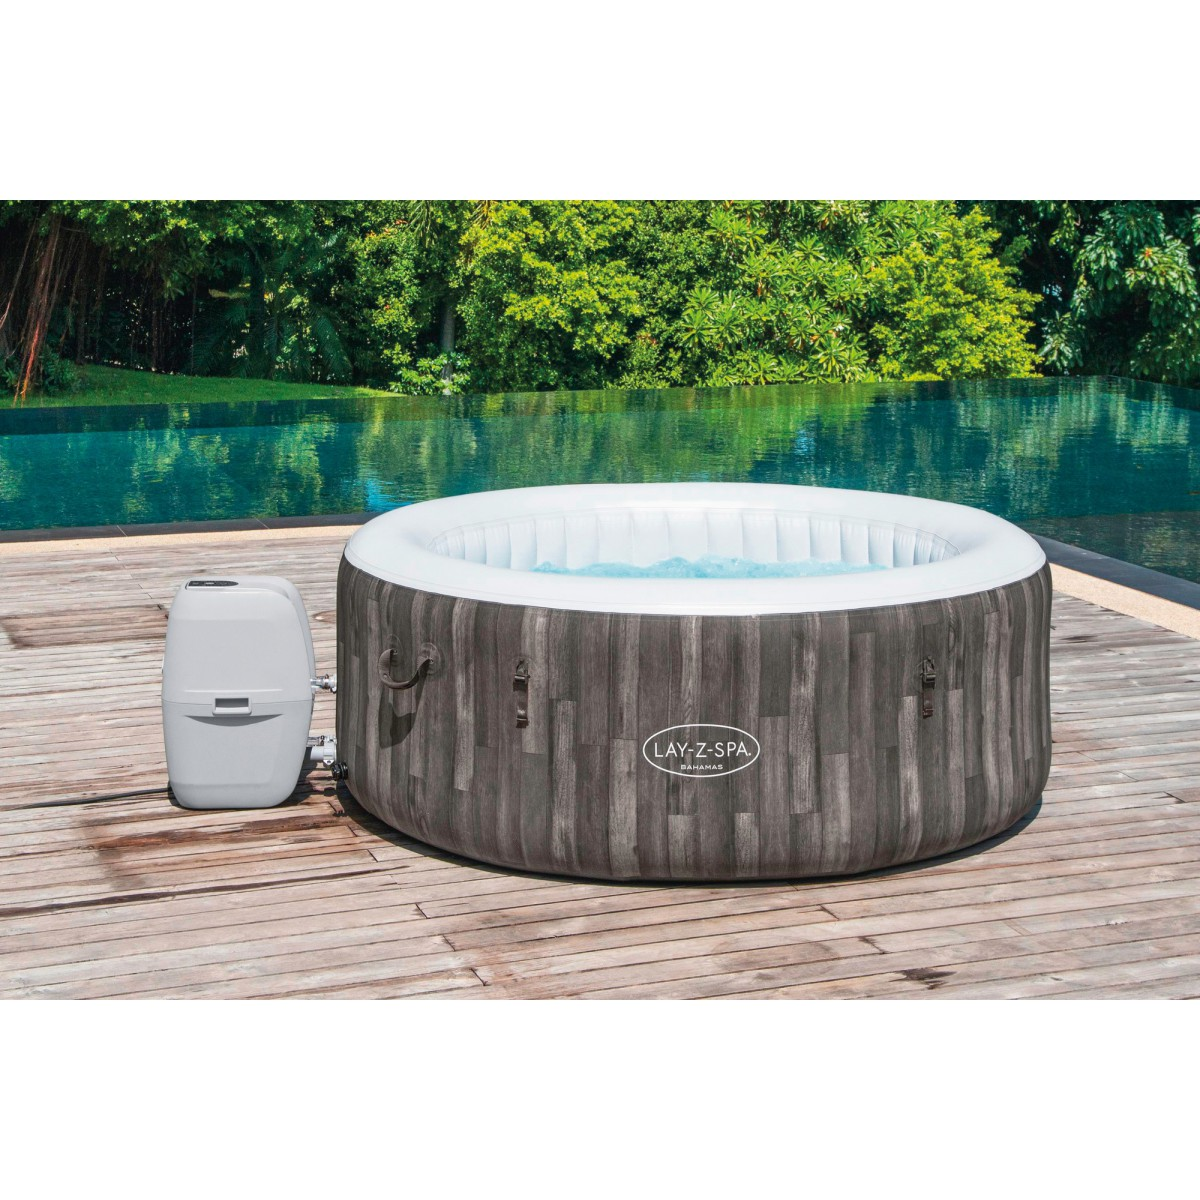 Spa gonflable rond Lay-Z-Spa® Bahamas Airjet™ Bestway - 2/4 places - 180 x 66 cm